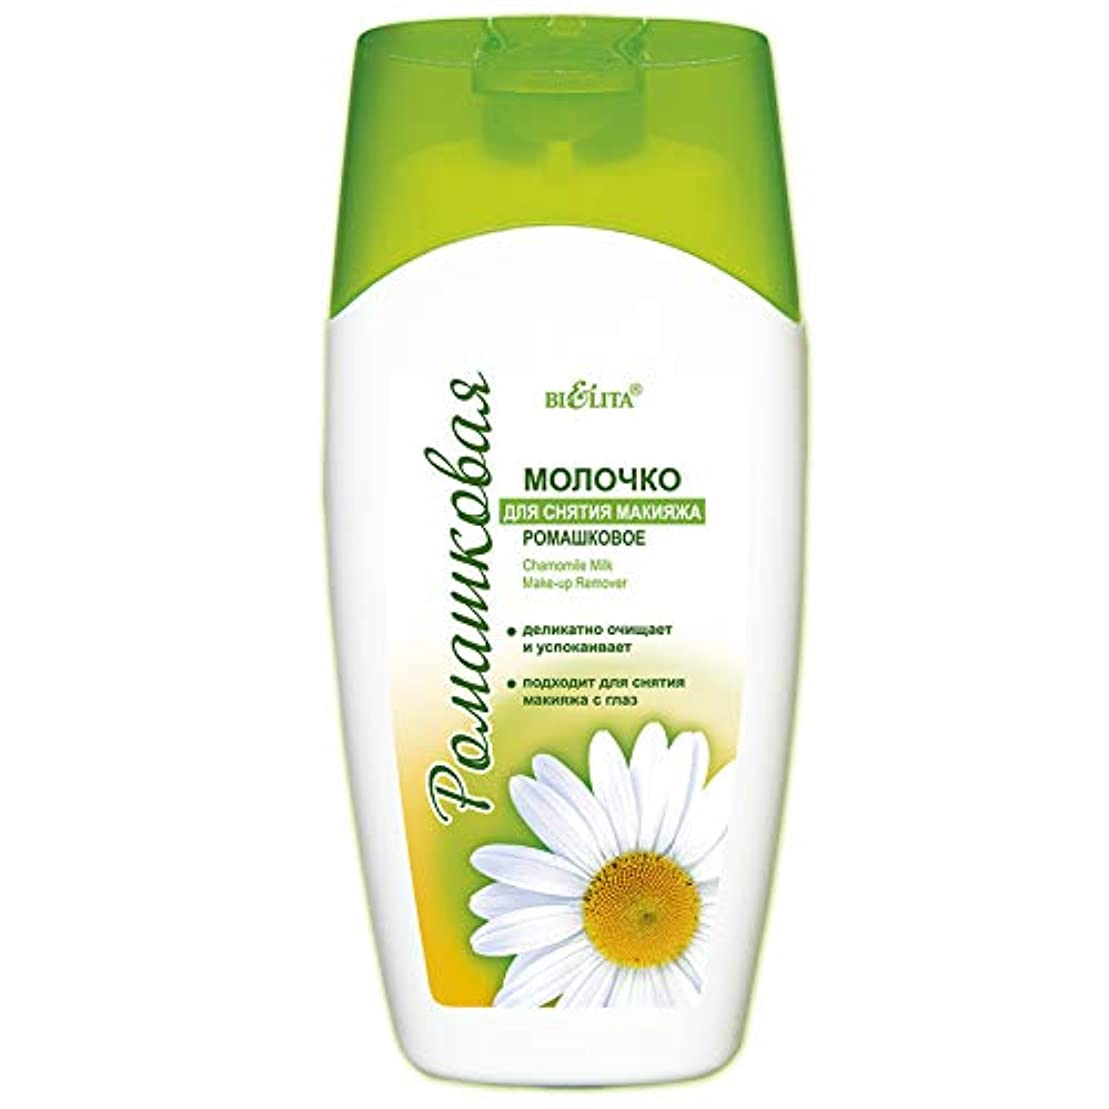 Bielita & Vitex | Chamomile Line| Make Up Remover for Eyes and Face for All Skin Types, 200 ml | Chamomile, Allantoin...